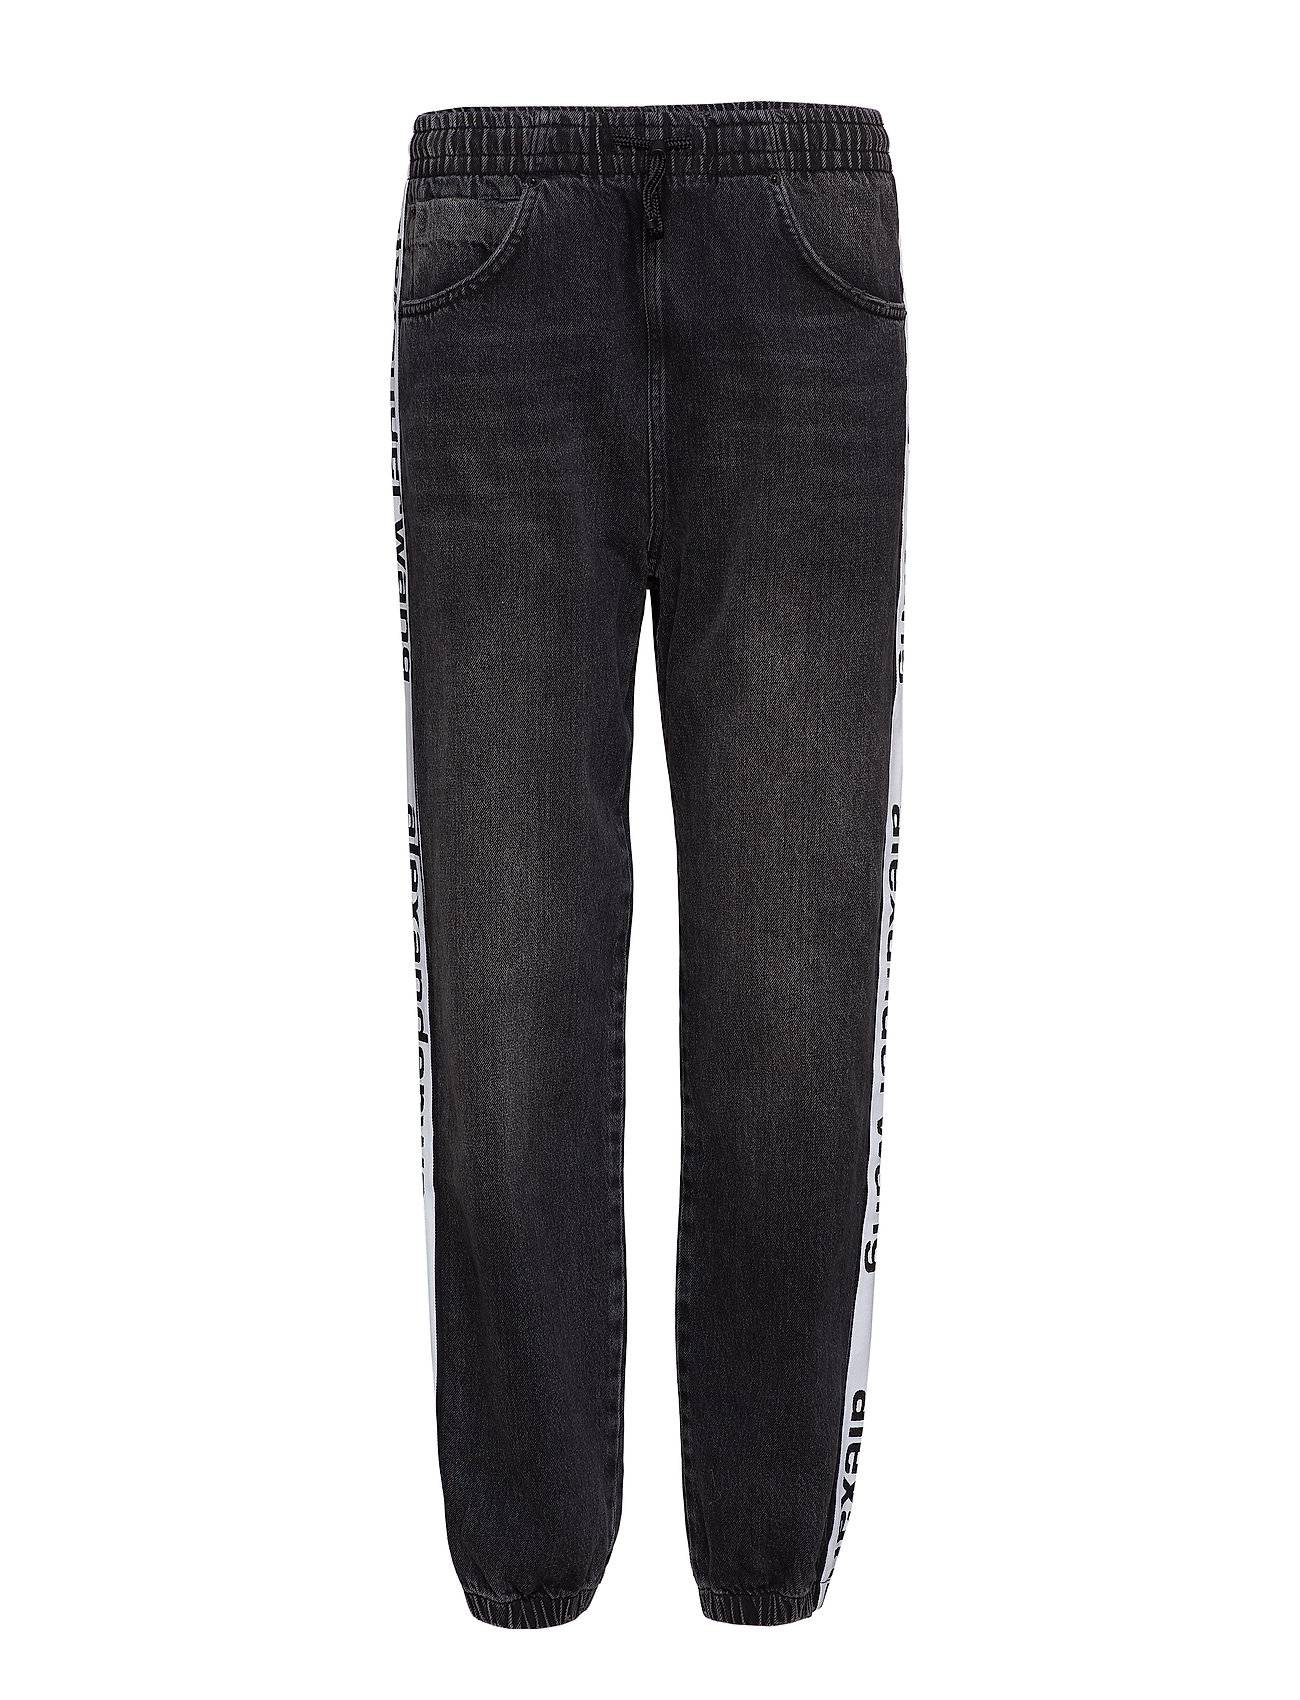 T by Alexander Wang Track Pant - Grey Aged